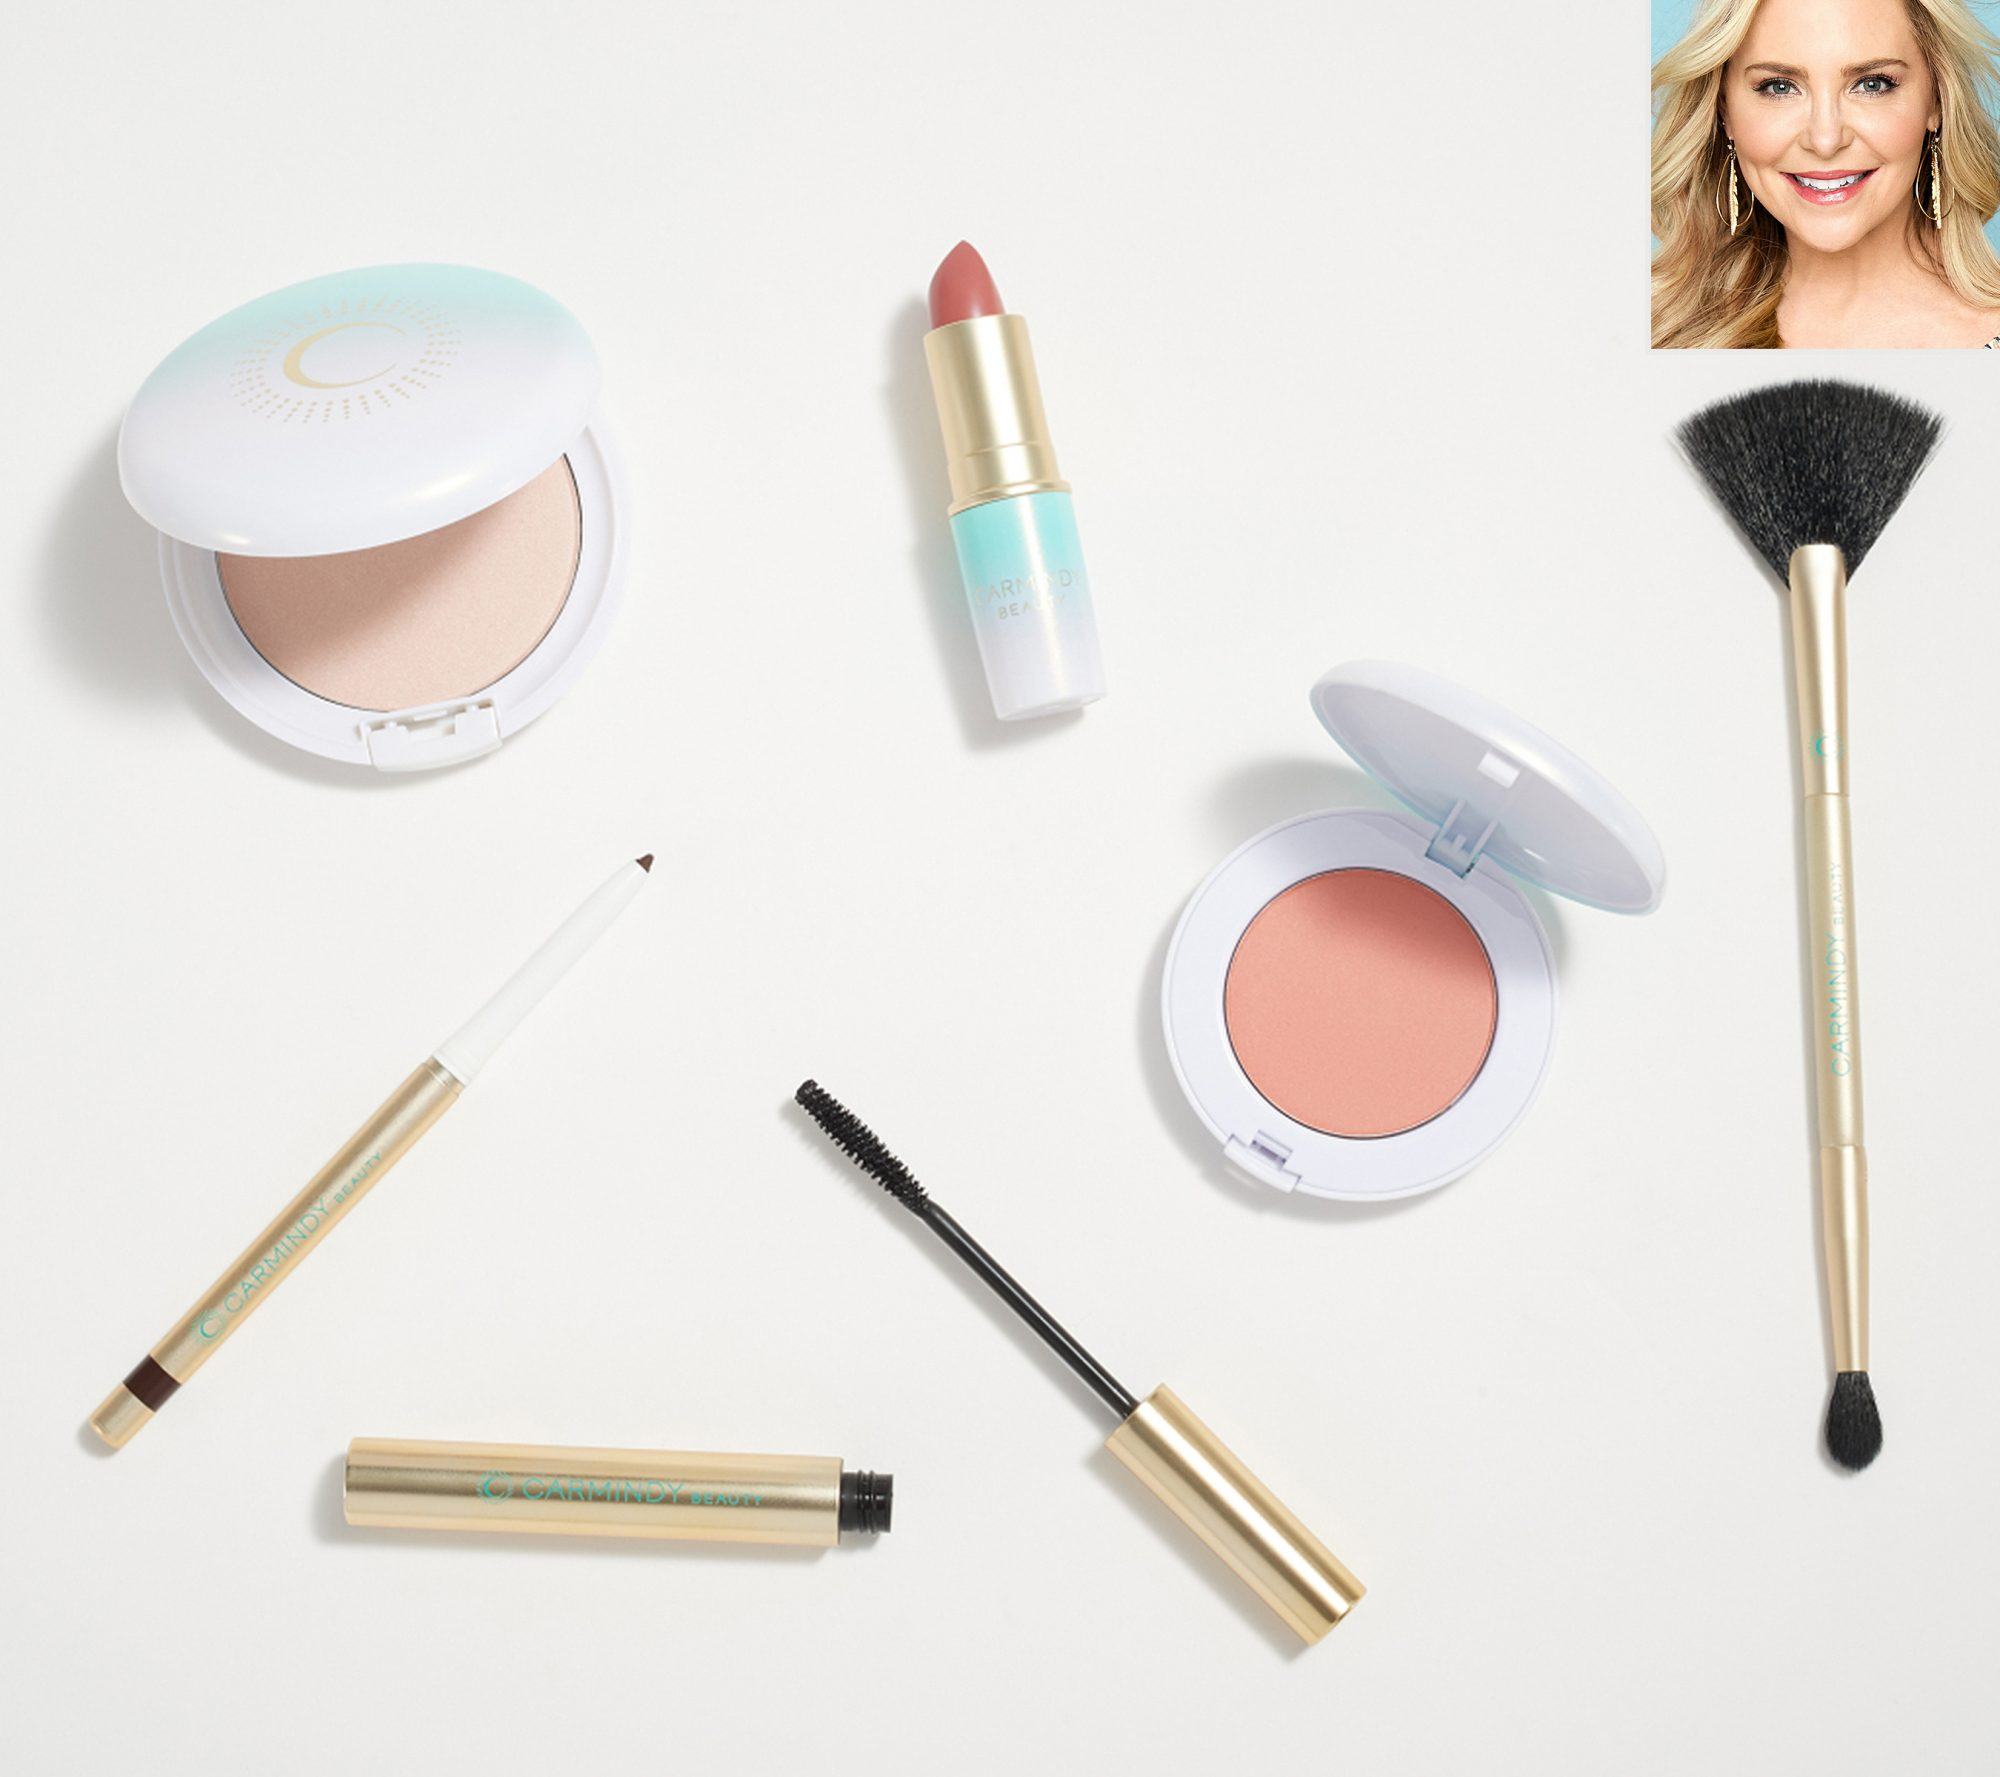 """Carmindy taught thousands of women the basics of beauty as the lead makeup artist on the TLC hit What Not To Wear, and now she's bringing her easy-to-copy makeup tips and tricks to the masses. The beauty pro just launched her new makeup line exclusively with QVC featuring a fool-proof numbered makeup system to take the guess work out of getting ready.                             The first is the """"Carmindizing Skin System Kit"""" which includes a primer, foundation, concealer and powder. And the second is """"The 5-Minute Face"""" which features a shimmery highlighter, an espresso-colored eyeliner, black mascara (in an easy-to-remove formula), a rose tone blush, a pink lipstick and a double-ended highlight brush, each designed in universal shades to complement all skin tones.                             Buy It! Carmindy Beauty 5 Minute Face 5-Piece Collection, $59.50; qvc.com"""